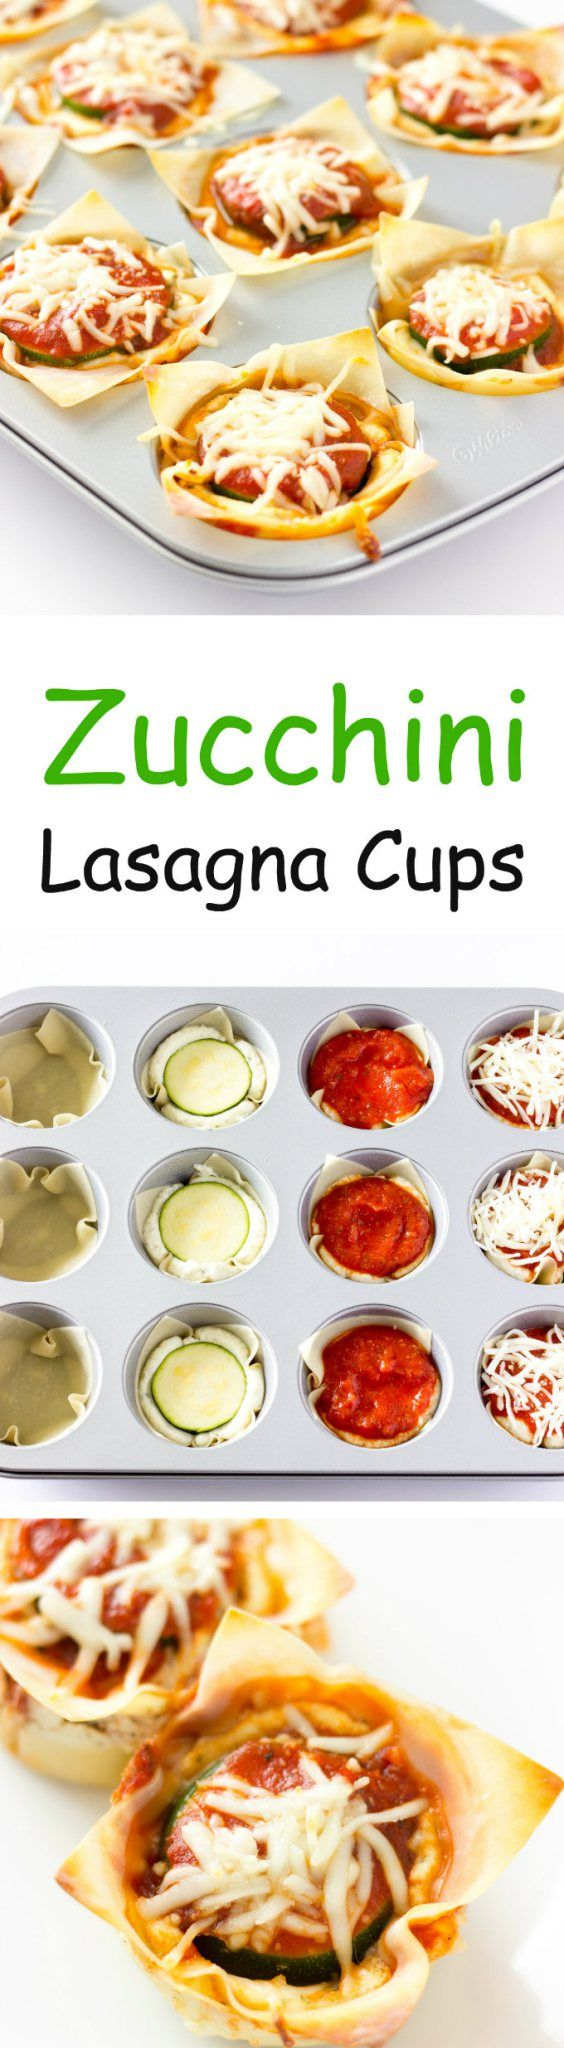 Zucchini Lasagna Cups - Quick, easy, mini #vegetarian lasagna cups made using wonton wrappers and a muffin tin.